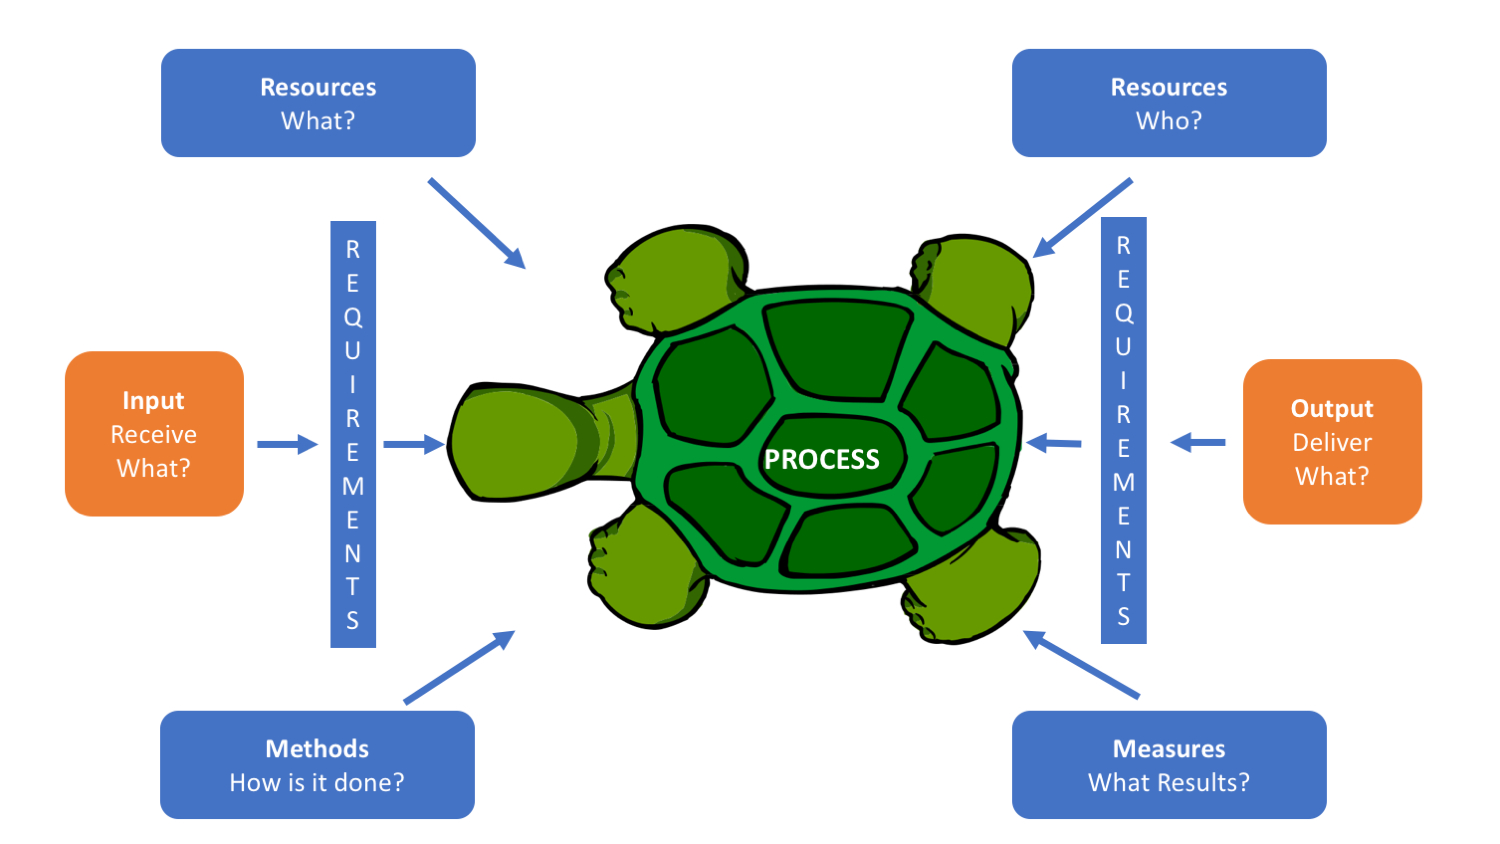 What Is A Diagram Using Turtle Diagram In Iso 9001 9000 Store